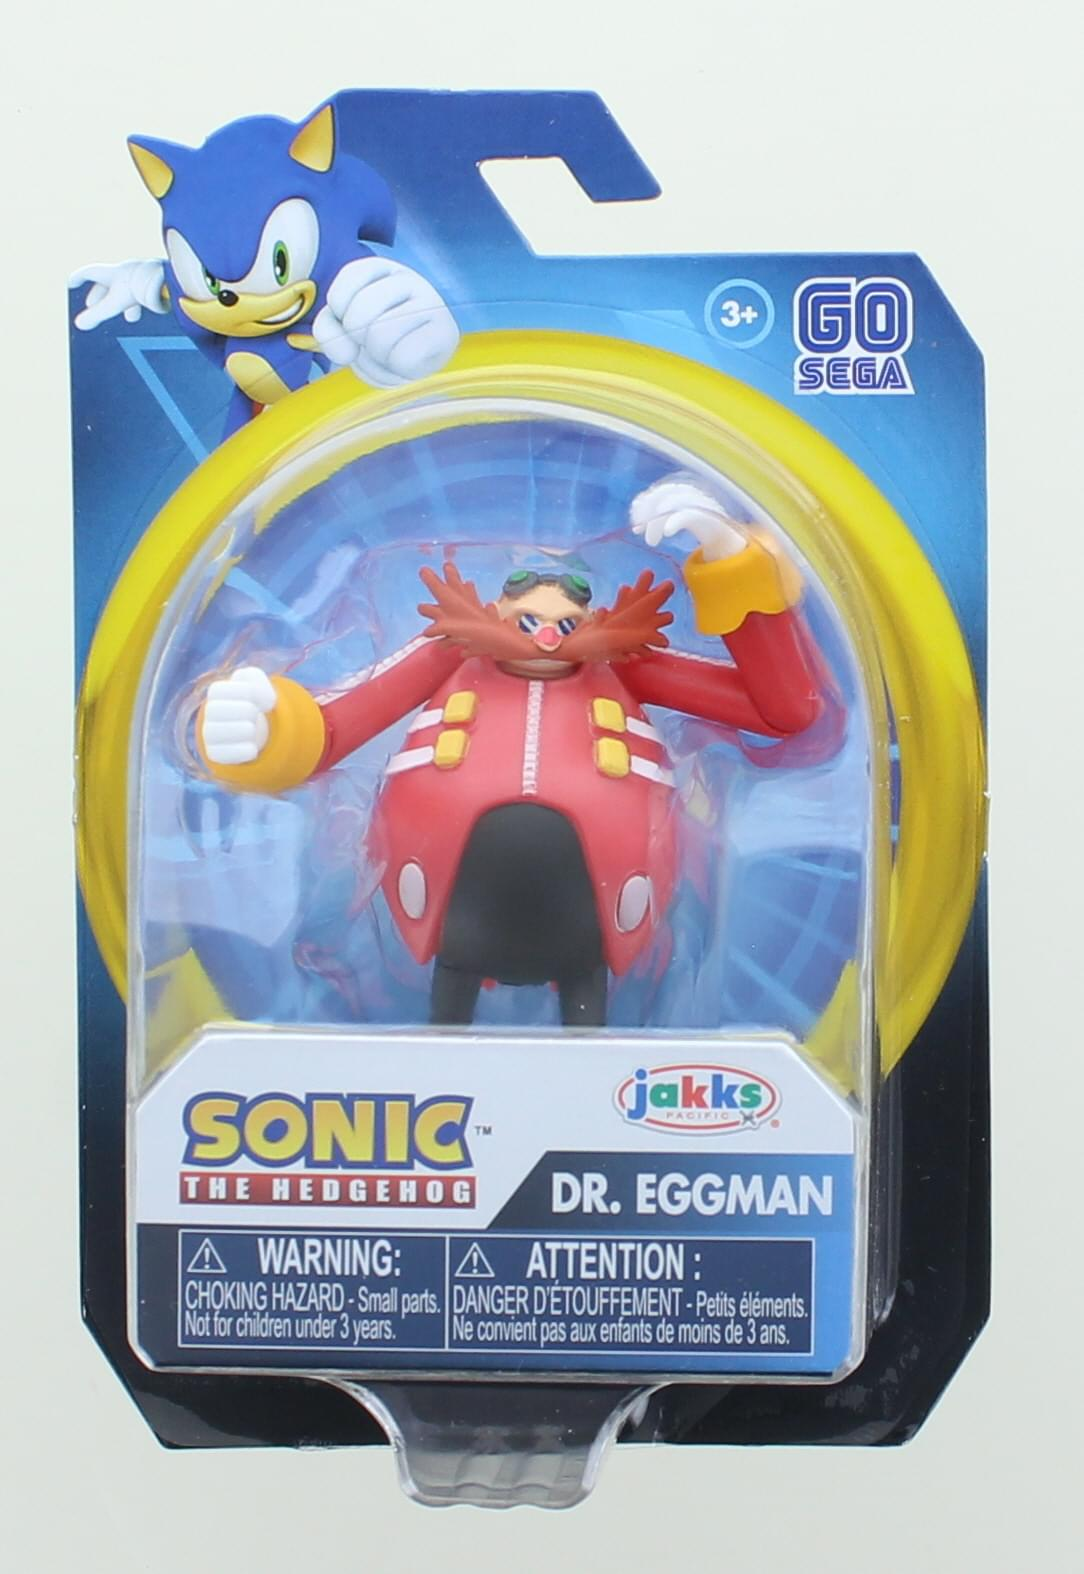 Sonic the Hedgehog 2.5 Inch Action Figure | Dr. Eggman